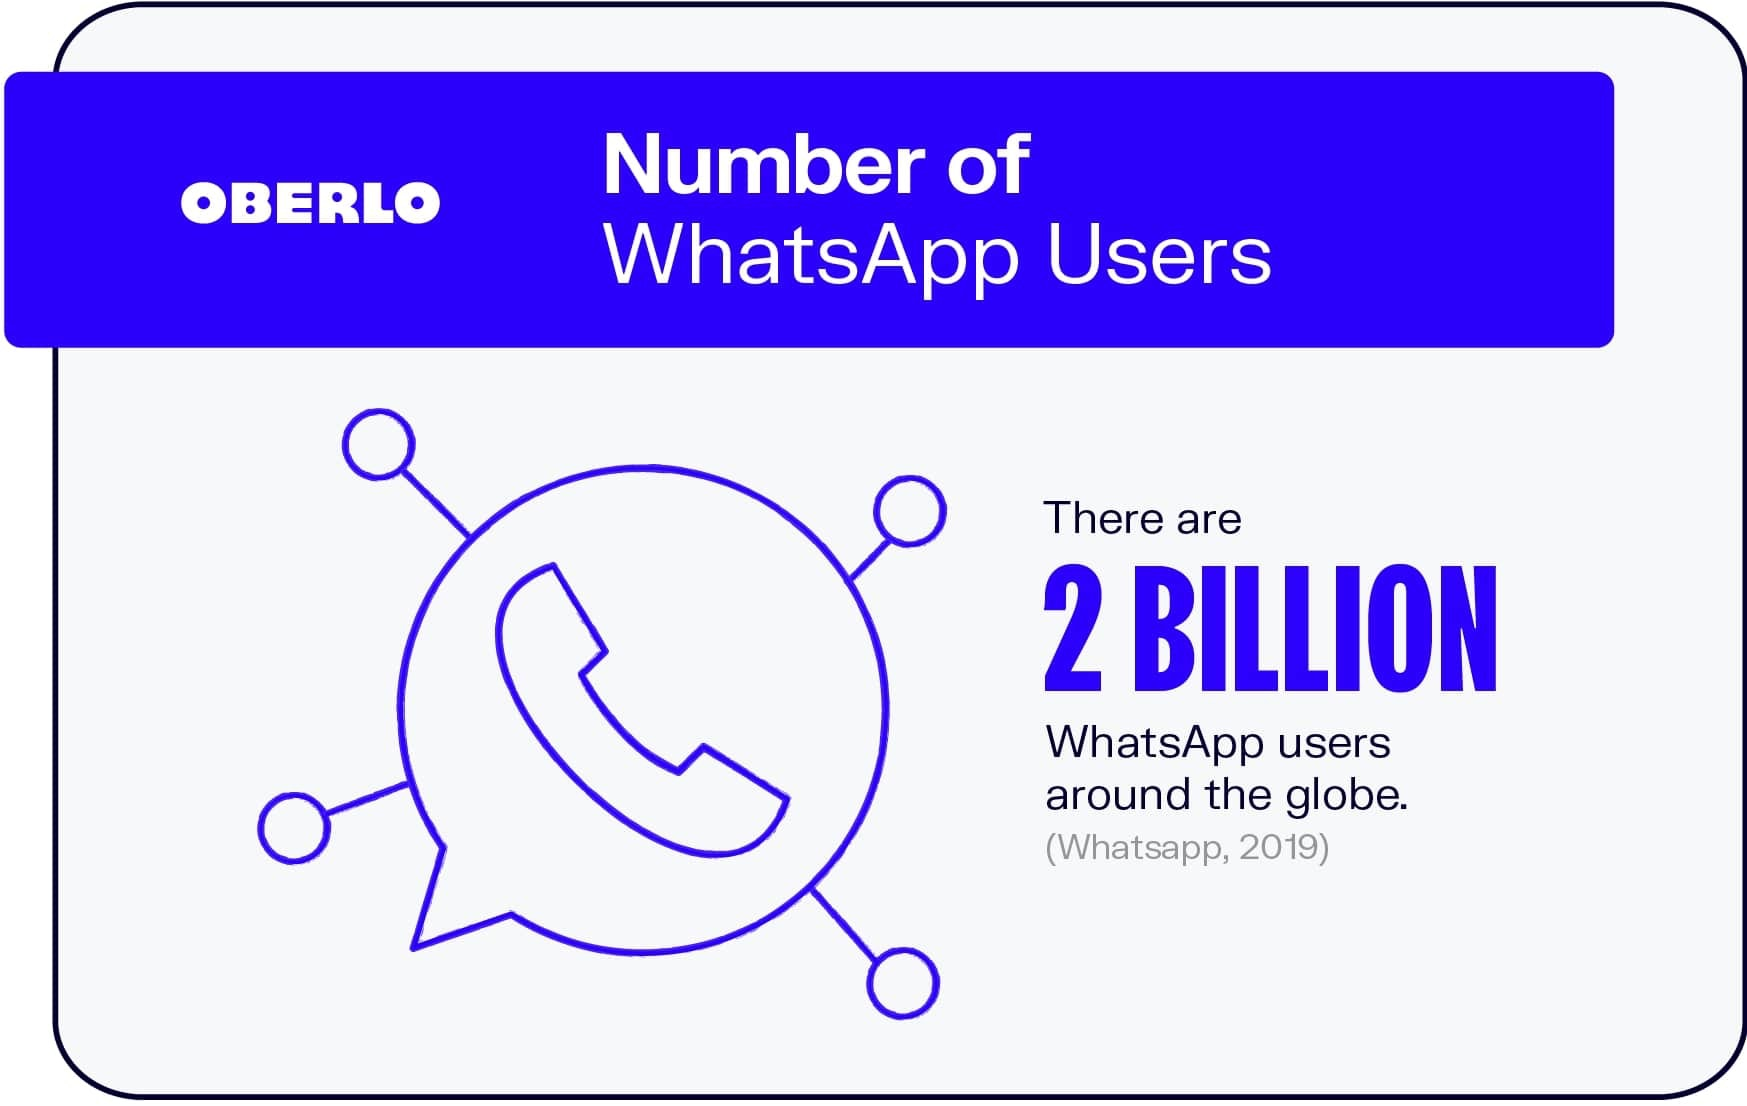 Number of WhatsApp Users